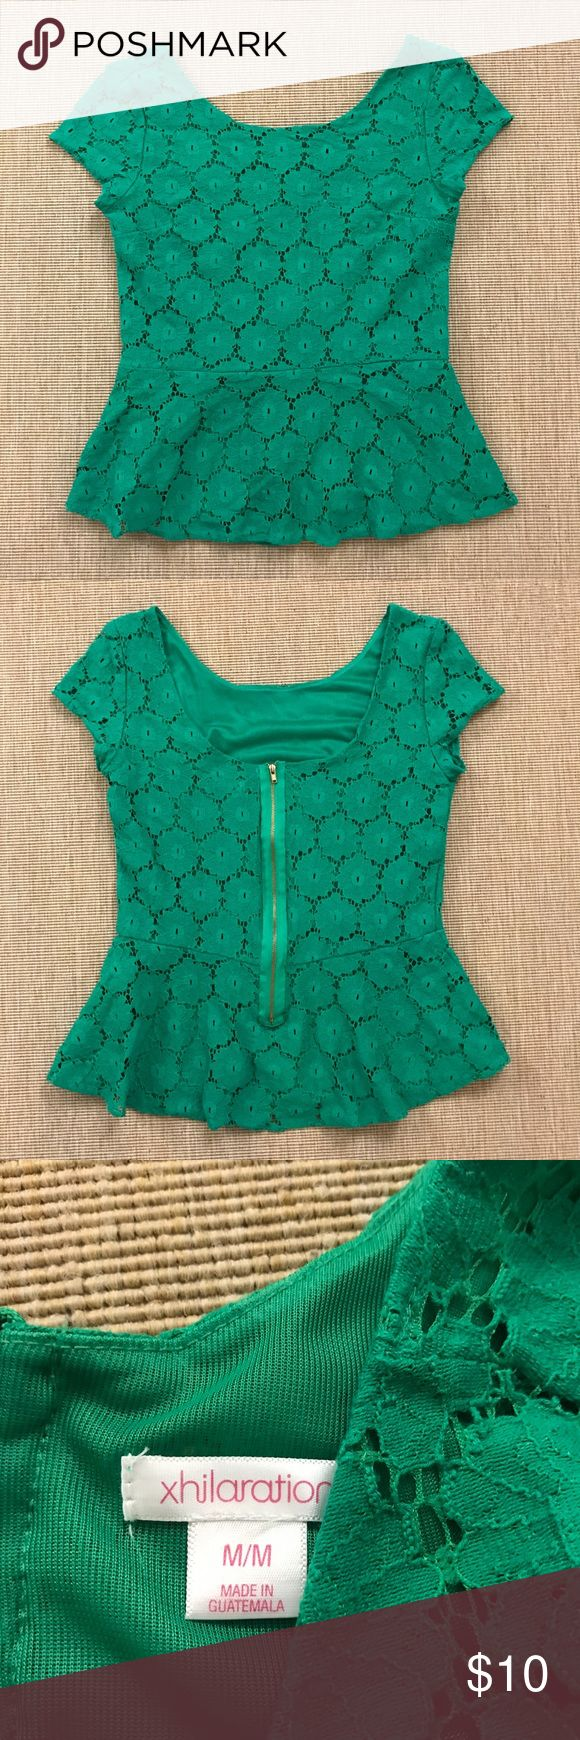 Xhiliration Emerald Green Lace Peplum Top M New! Adorable Xhiliration Emerald Green Lace Peplum Top- size M. Exposed Zip detail at back. Fully lined. Brand new. Xhilaration Tops Blouses